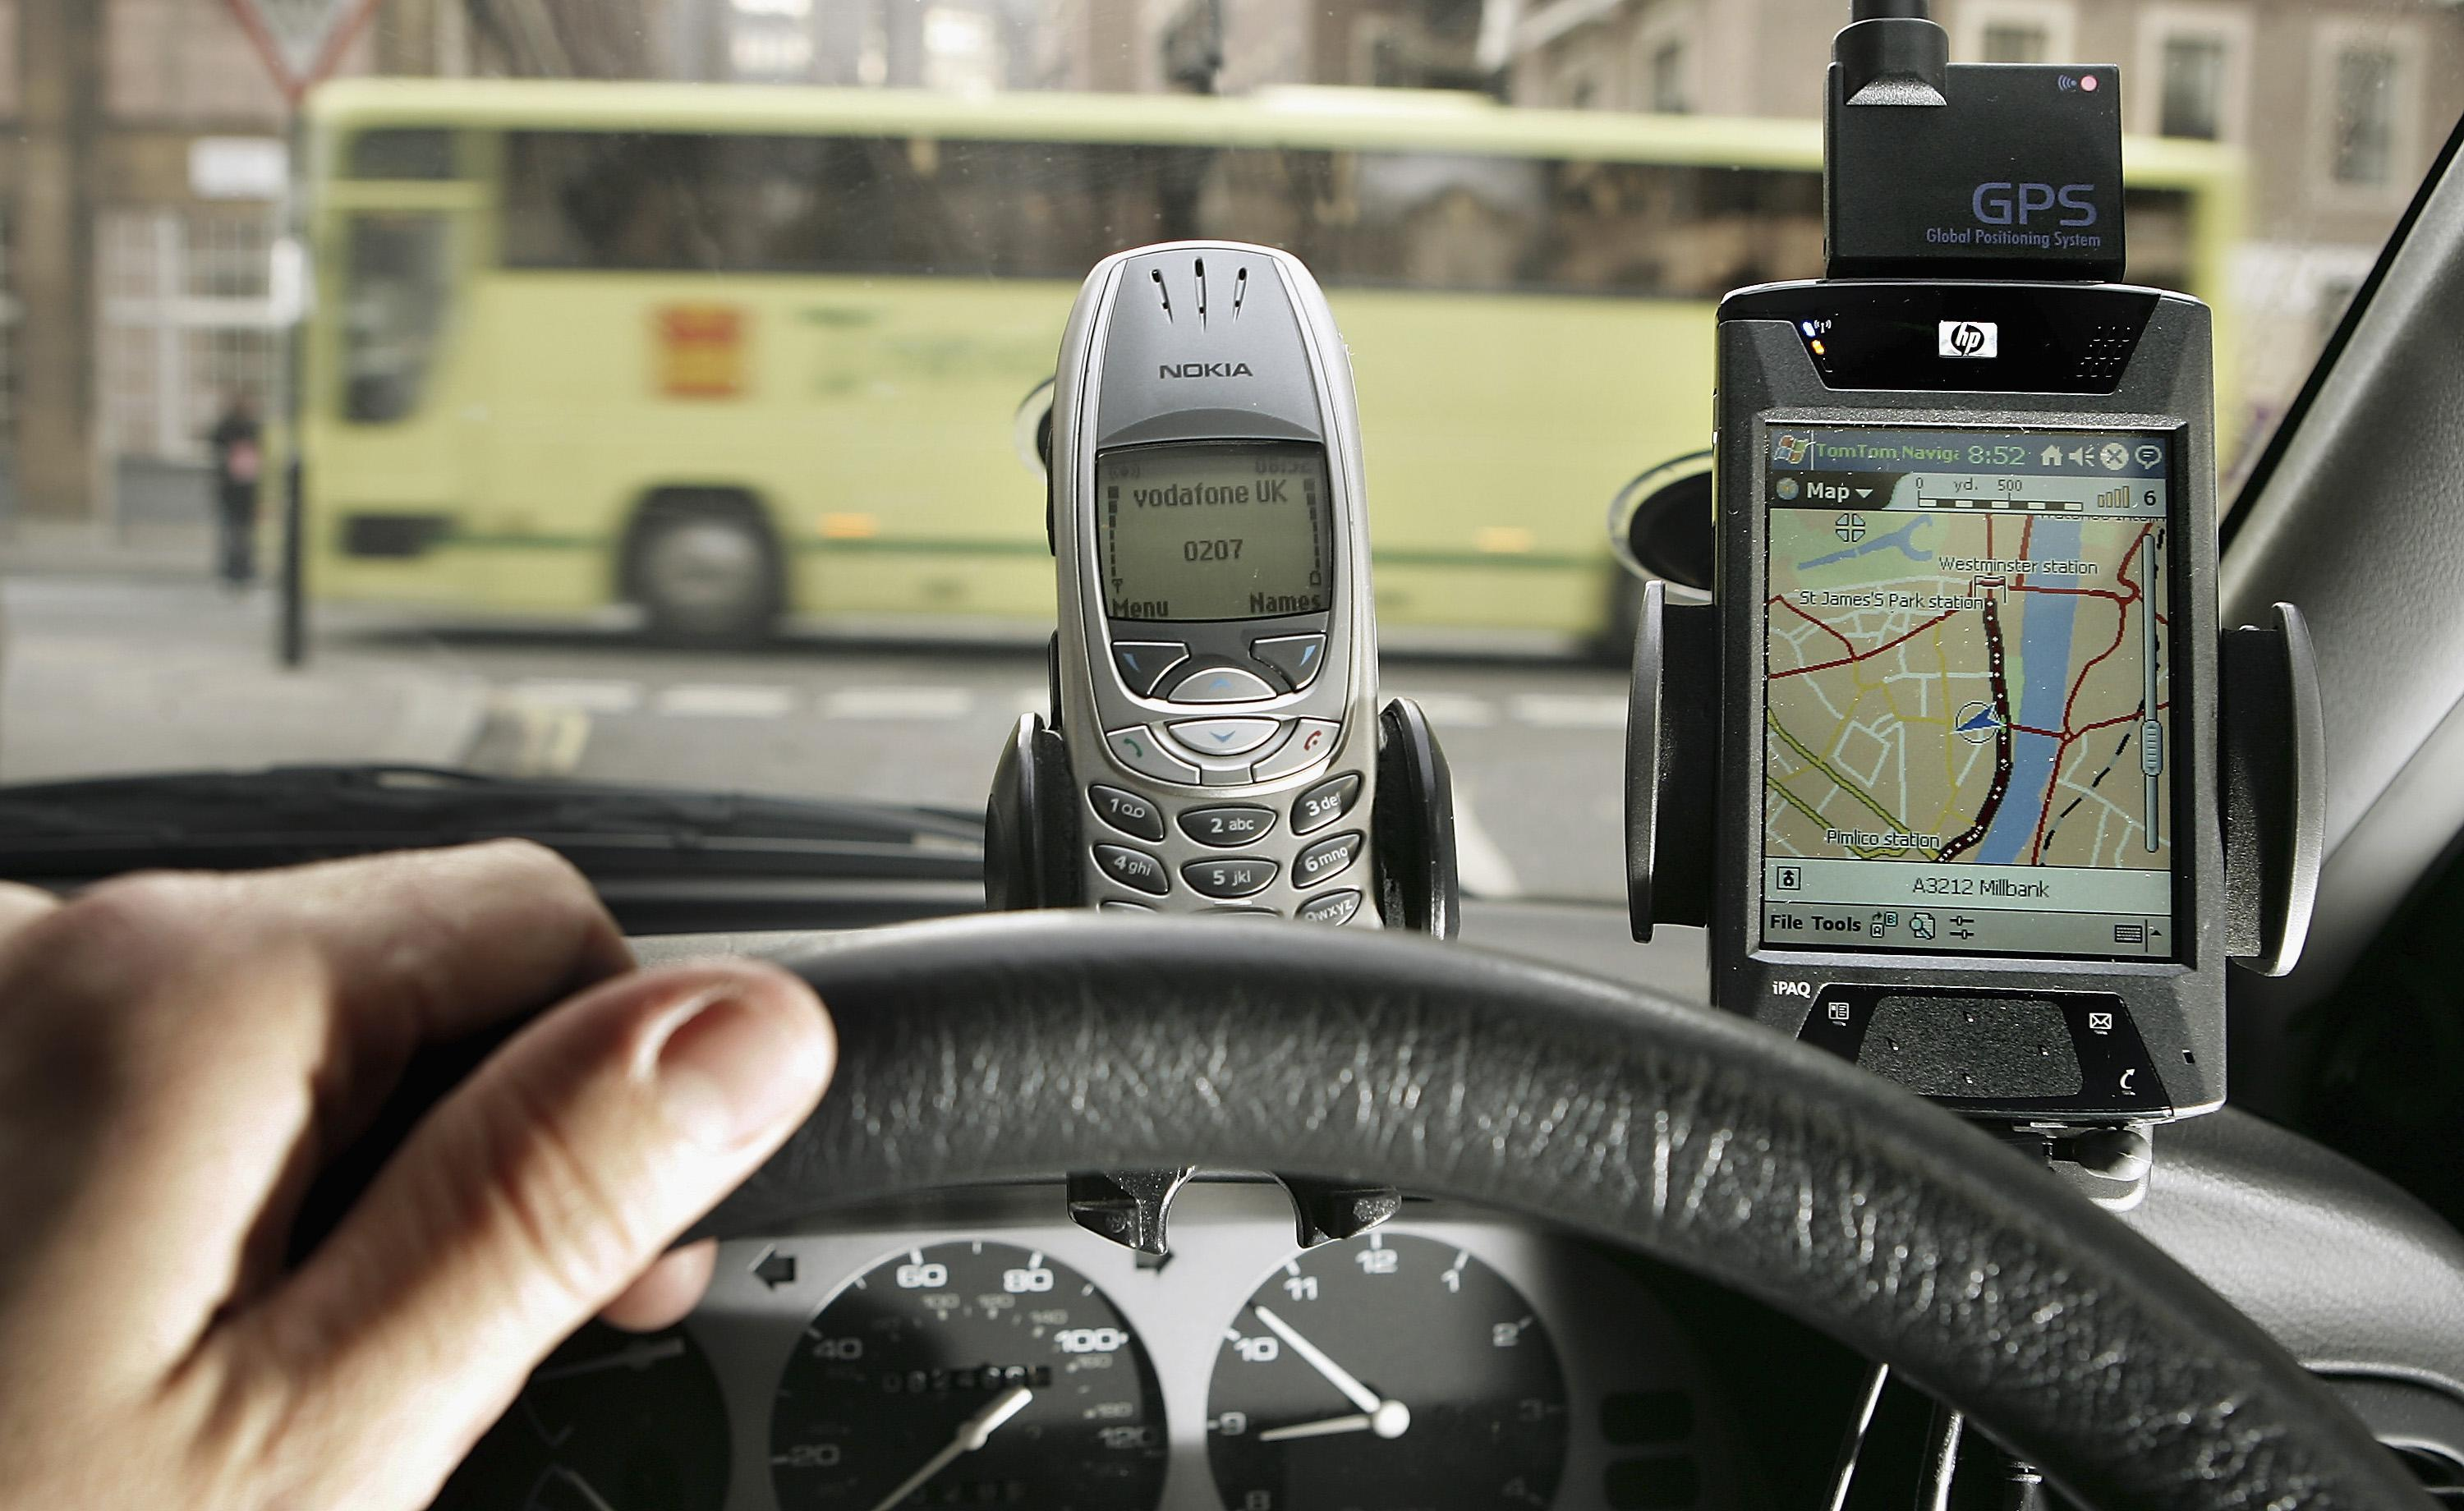 In car navigation and telephone dashboard mounted devices.